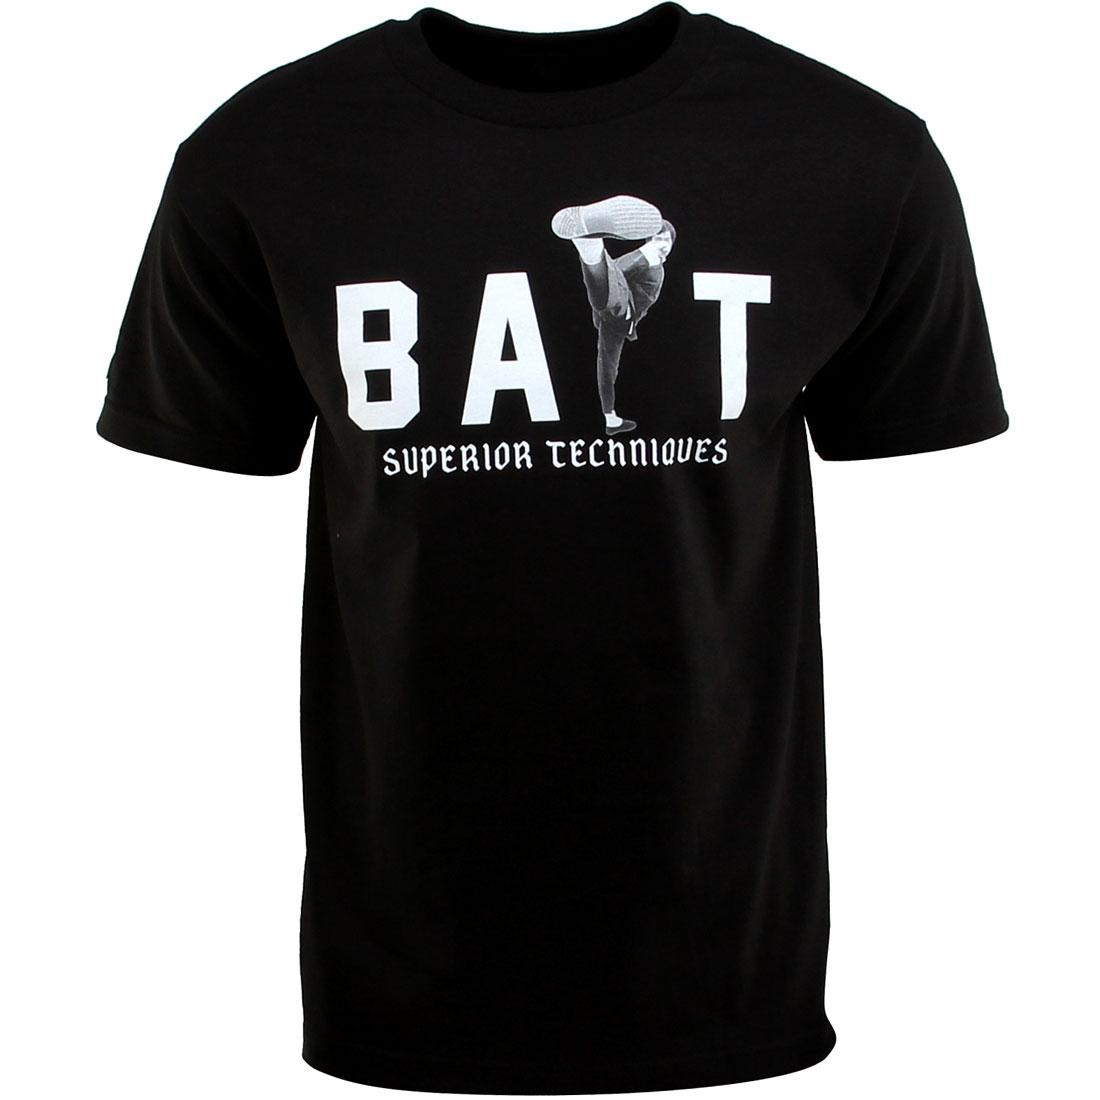 BAIT x Bruce Lee High Kick Tee (black / white) - BAIT SDCC Exclusive